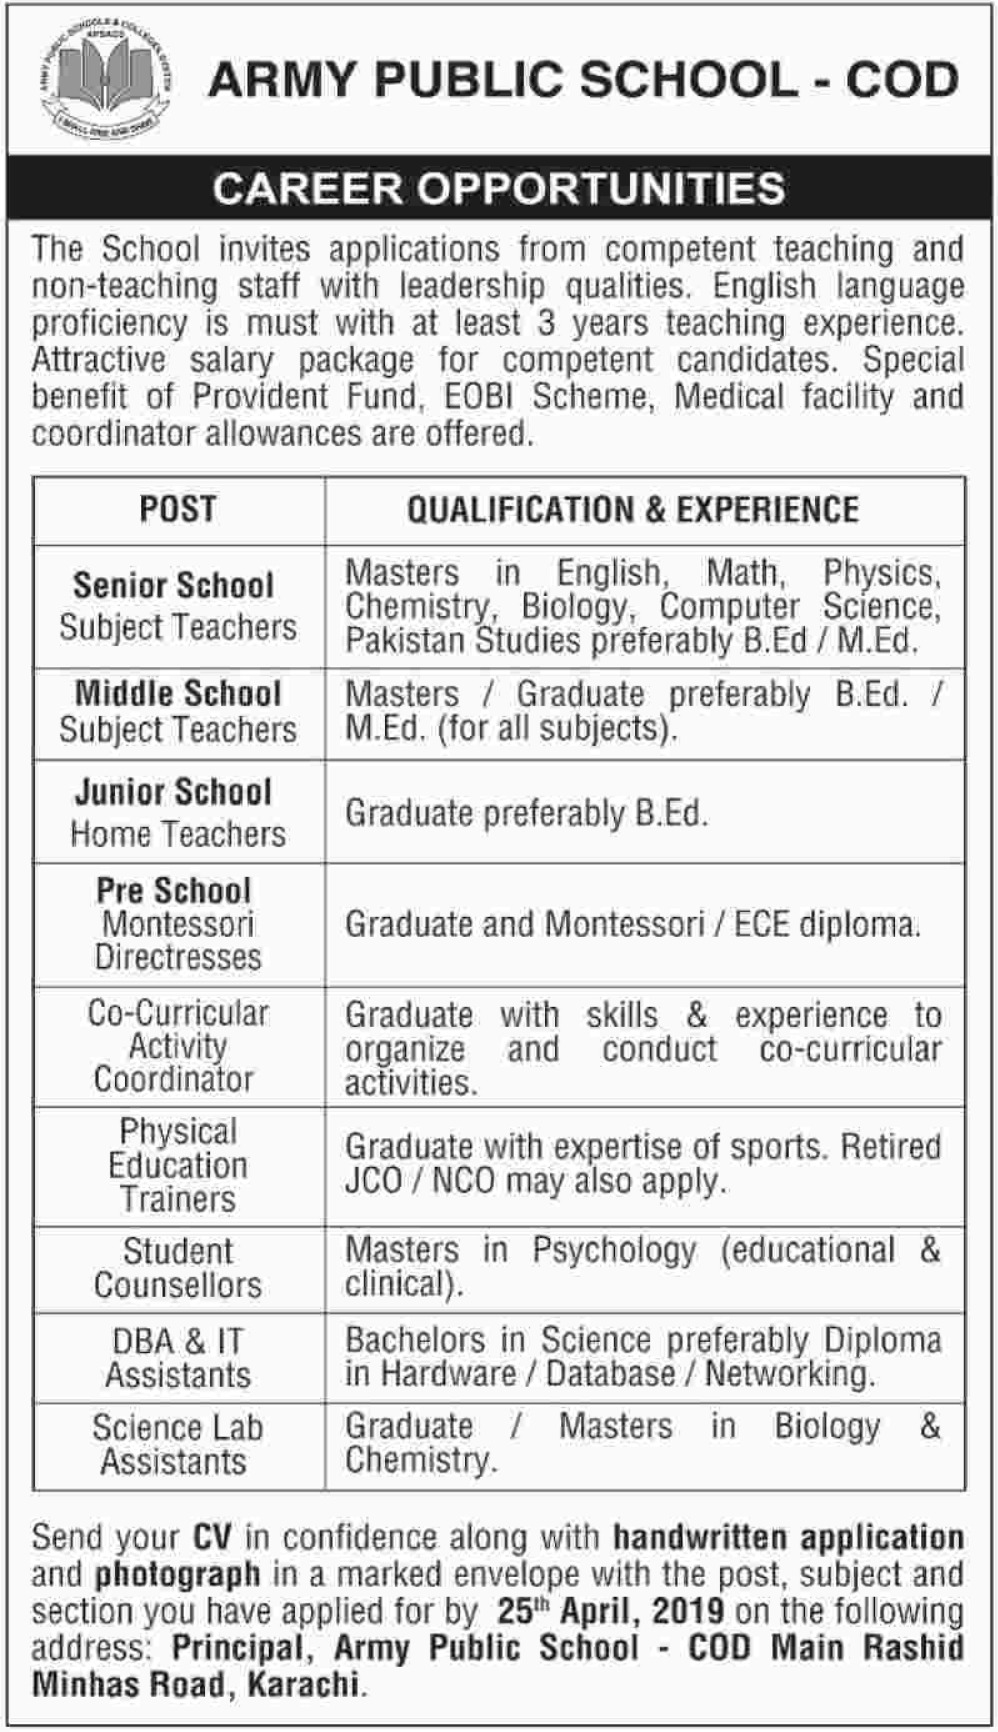 Army Public School COD Karachi Jobs 2019 Latest